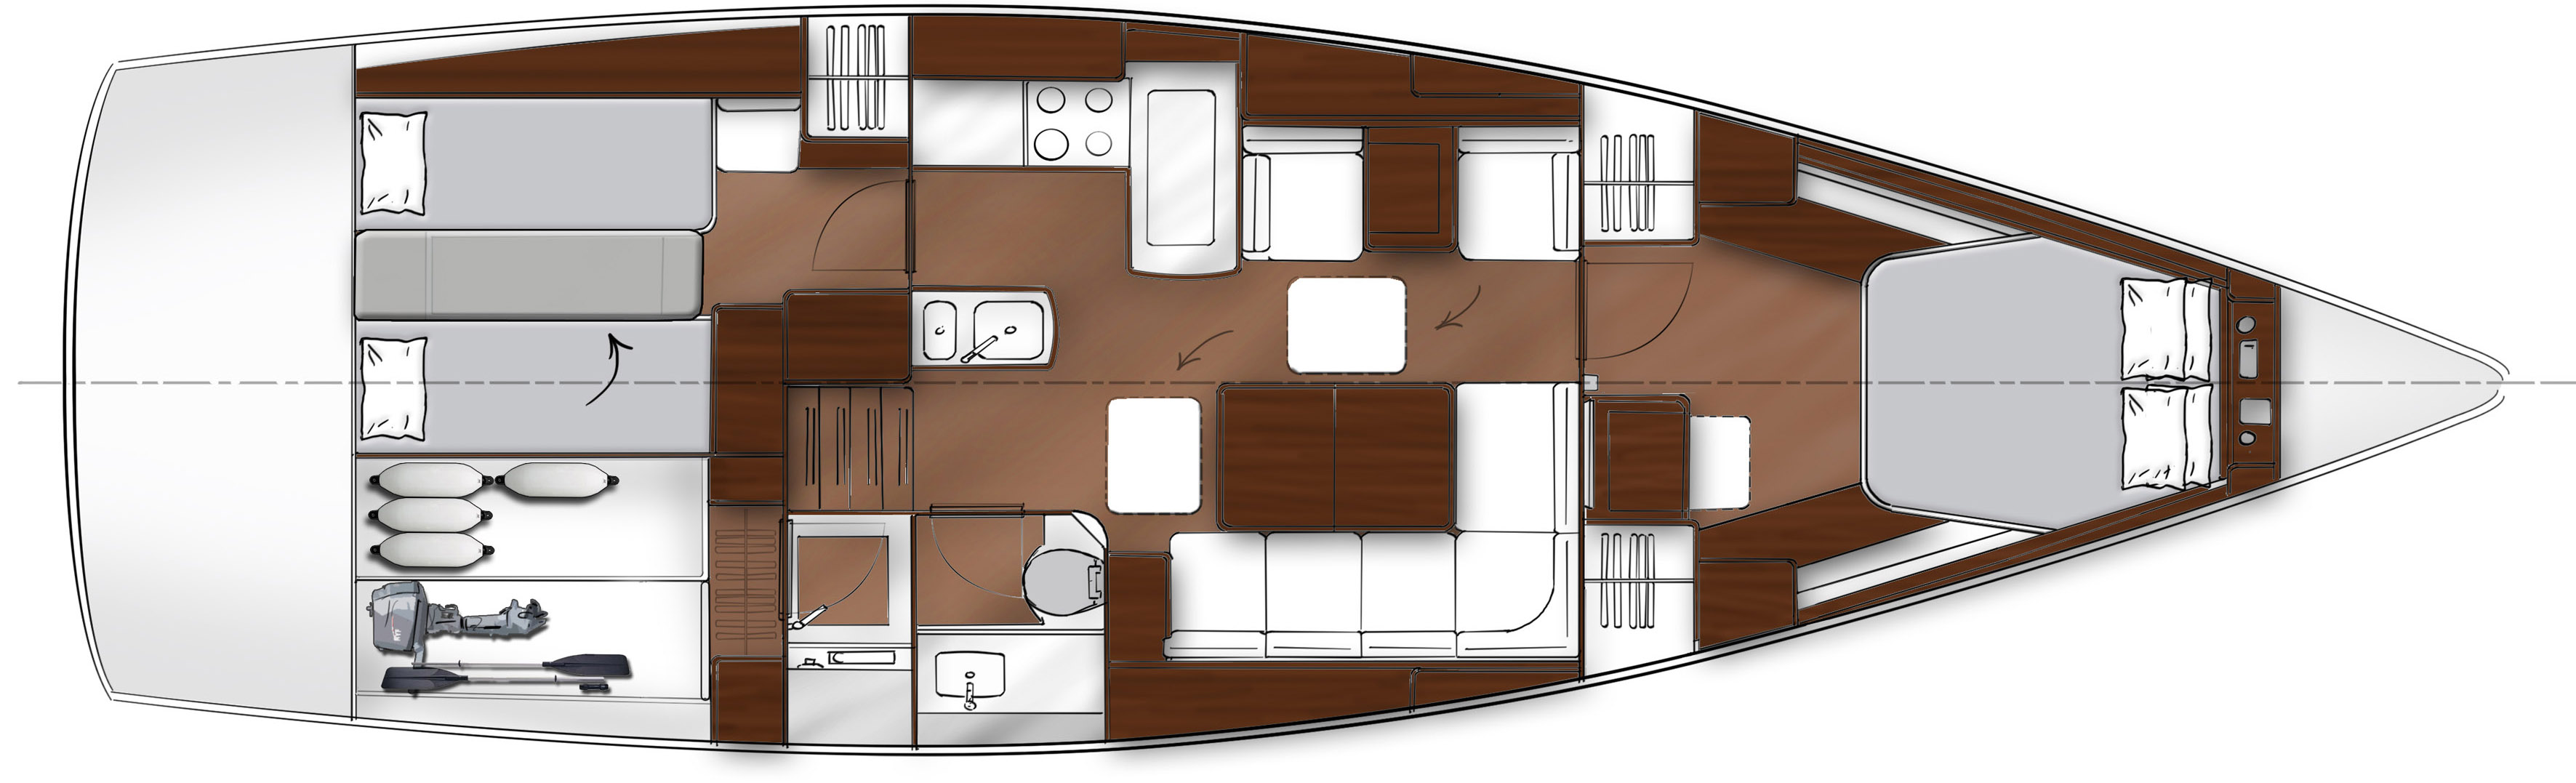 Bavaria Vision 46 Layout 1